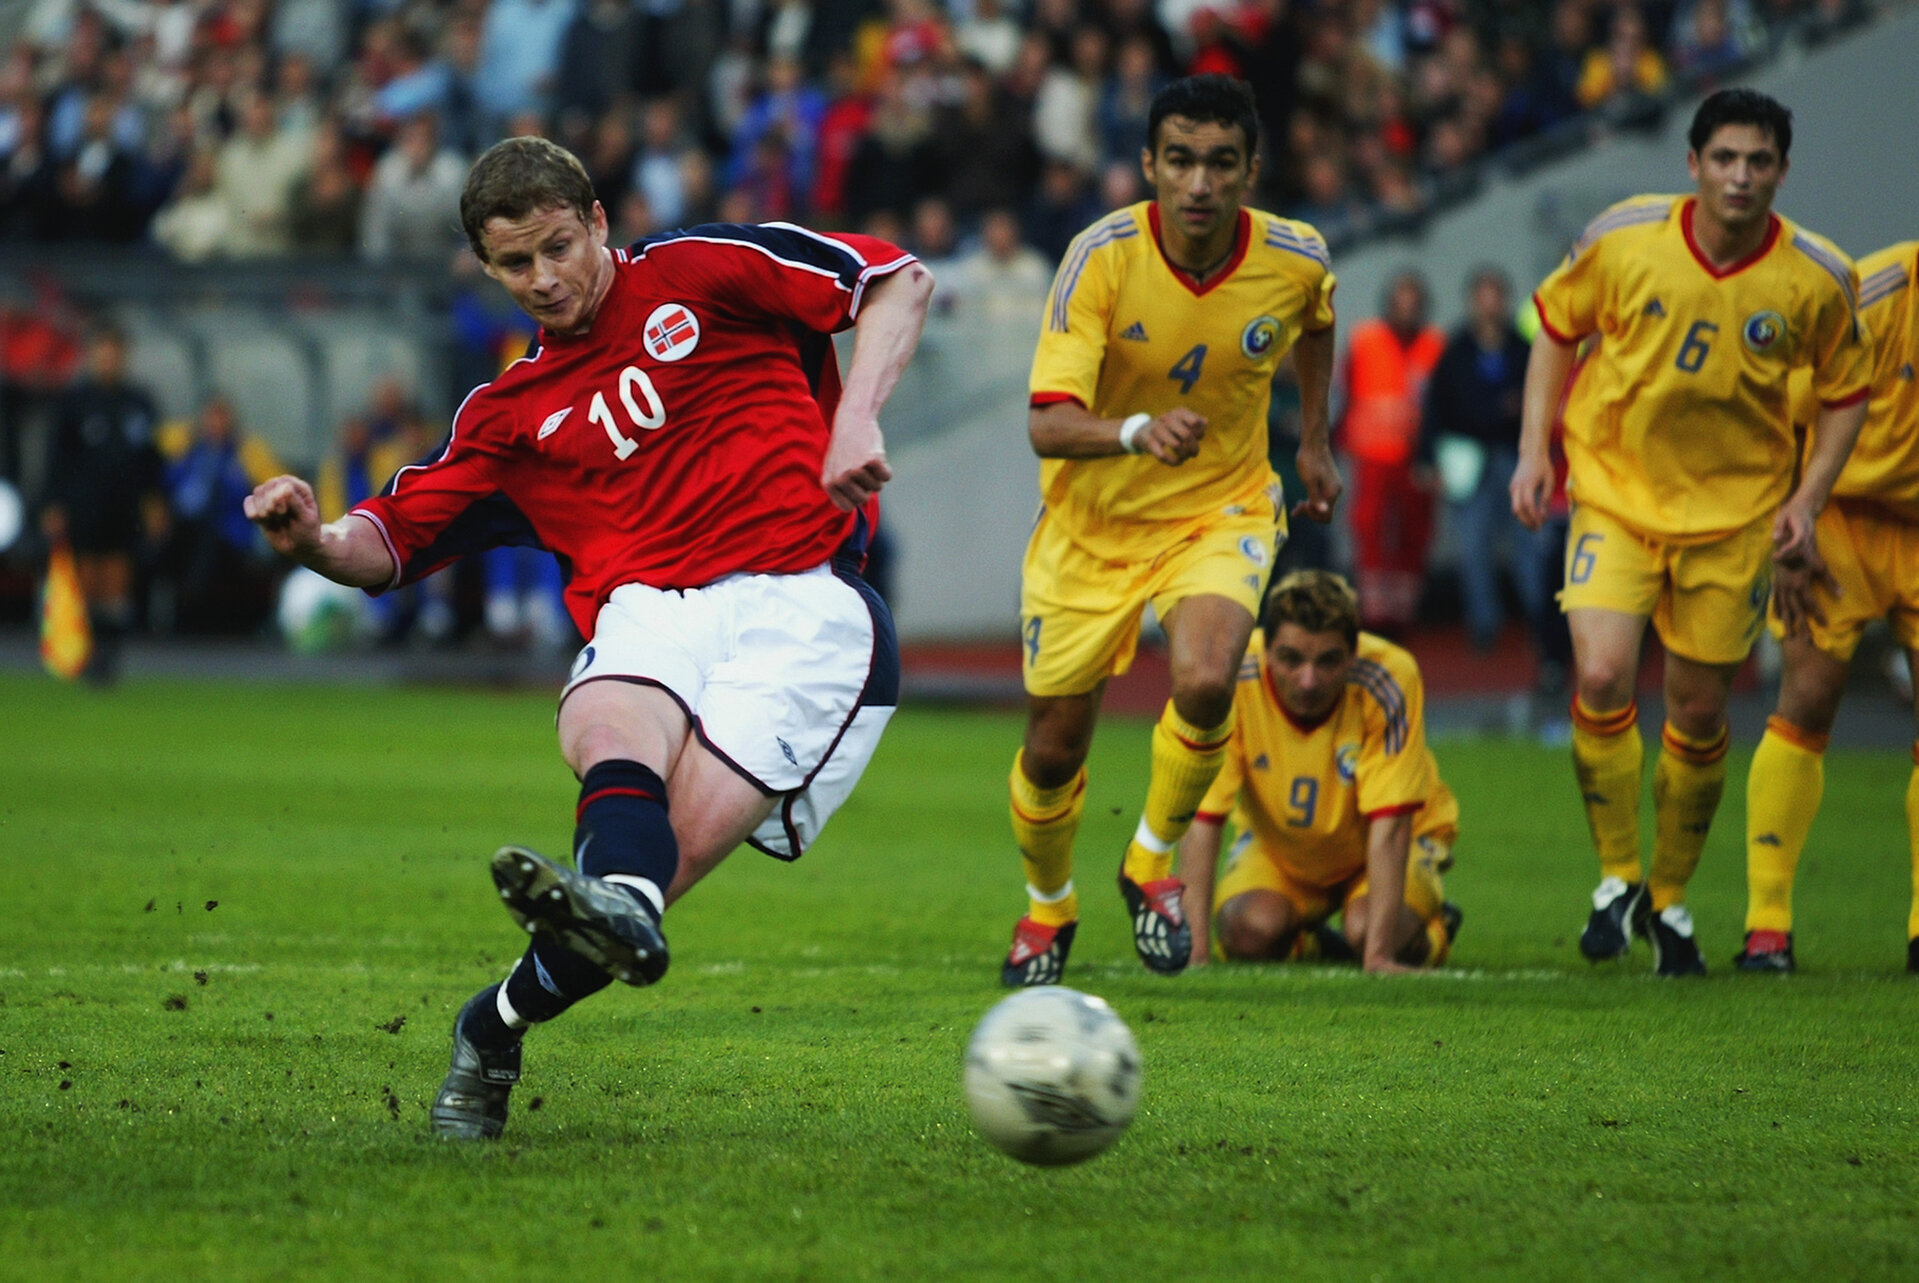 OSLO - JUNE 11:  Ole Gunnar Solskjaer of Norway scores penalty during the European Championship Qualifying Group 2 match between Norway and Romania held on 11 June, 2003 at the Ullevaal Stadium in Oslo, Norway.  The match ended in a 2-2 draw. (Photo by Shaun Botterill/Getty Images)